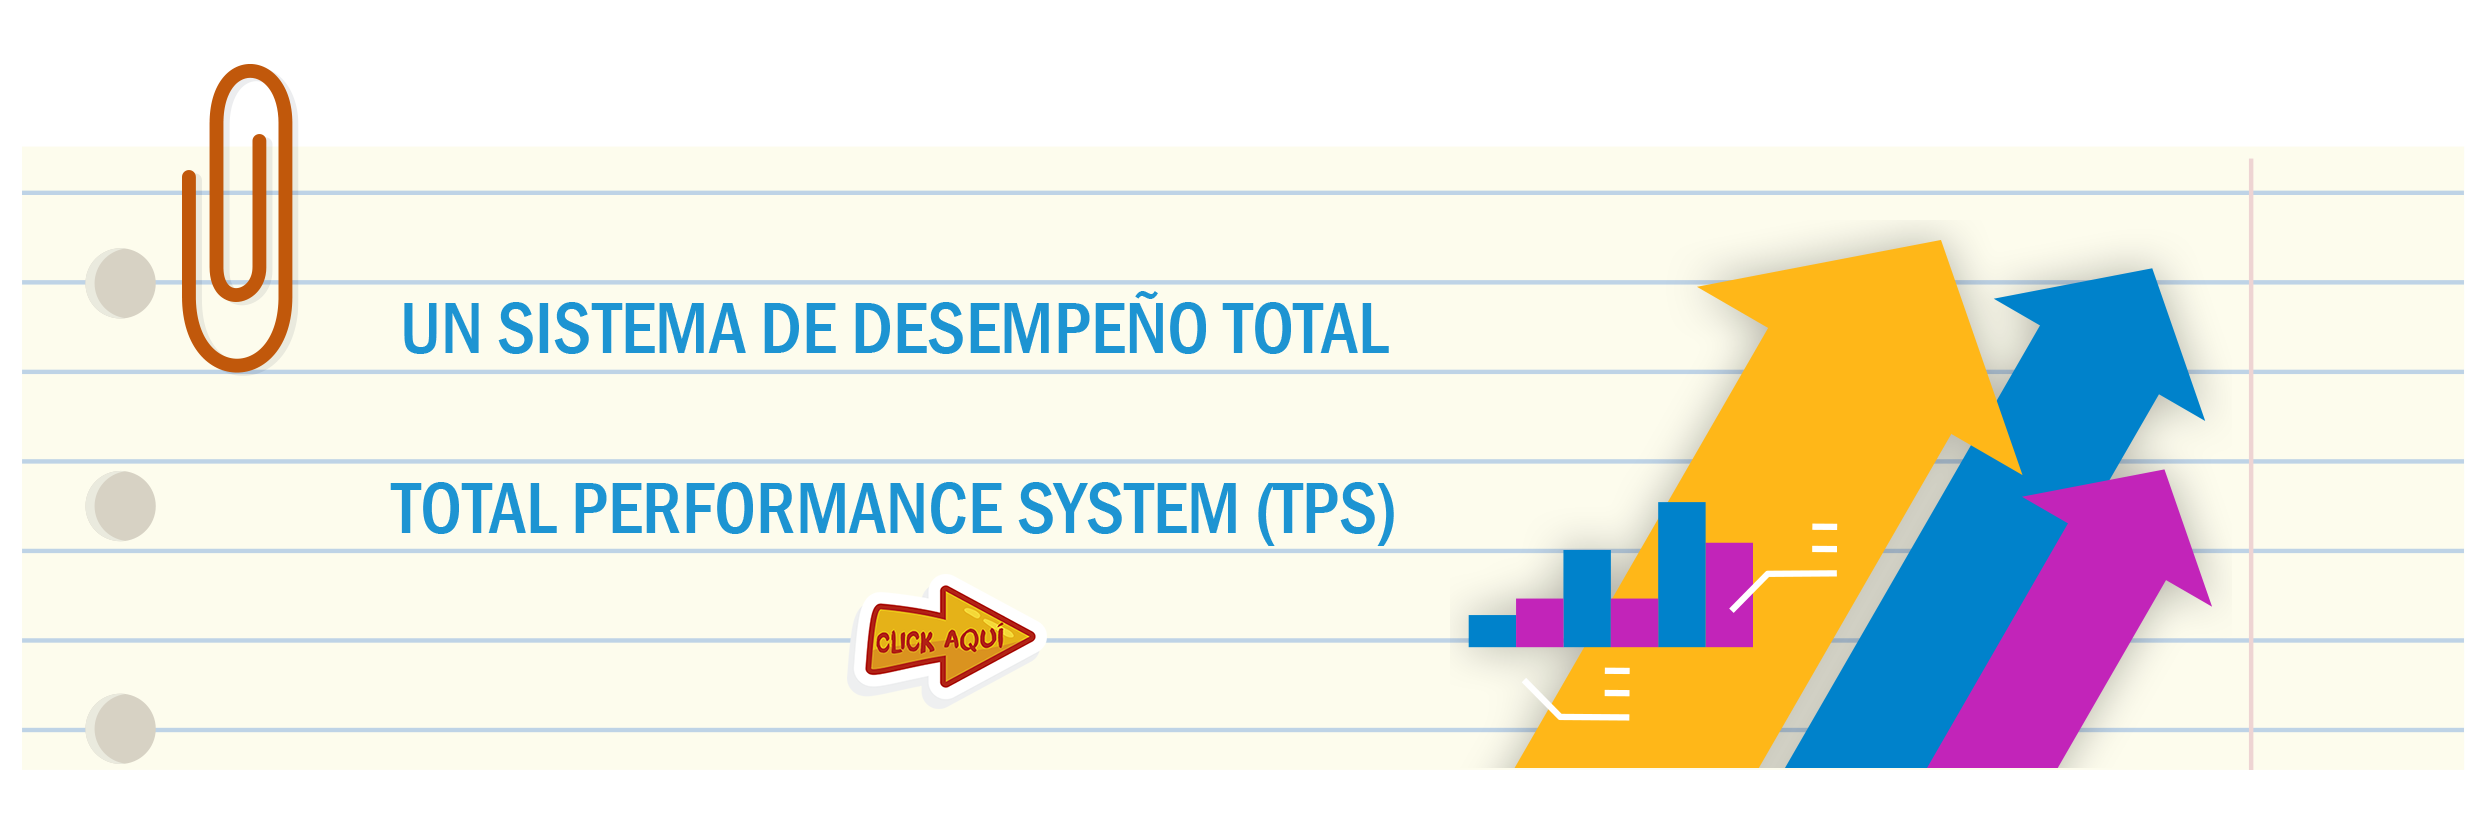 sistema_desempeno_total_william_abernathy_perfomance_system.png